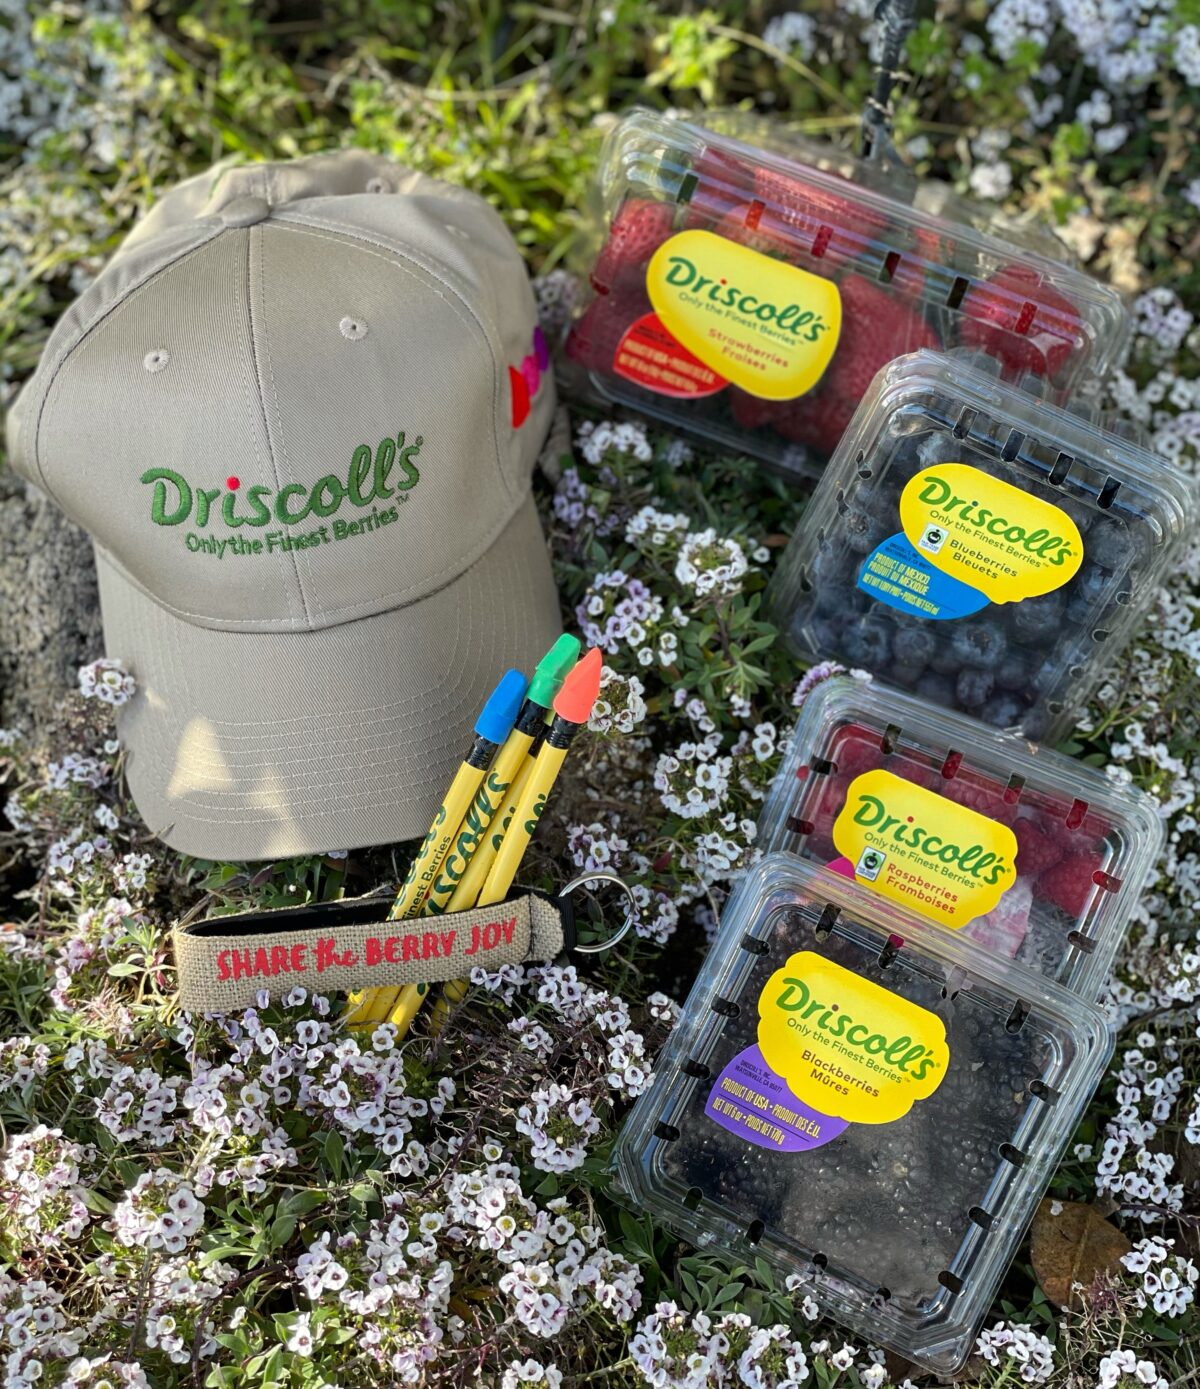 Driscoll's Berries in California